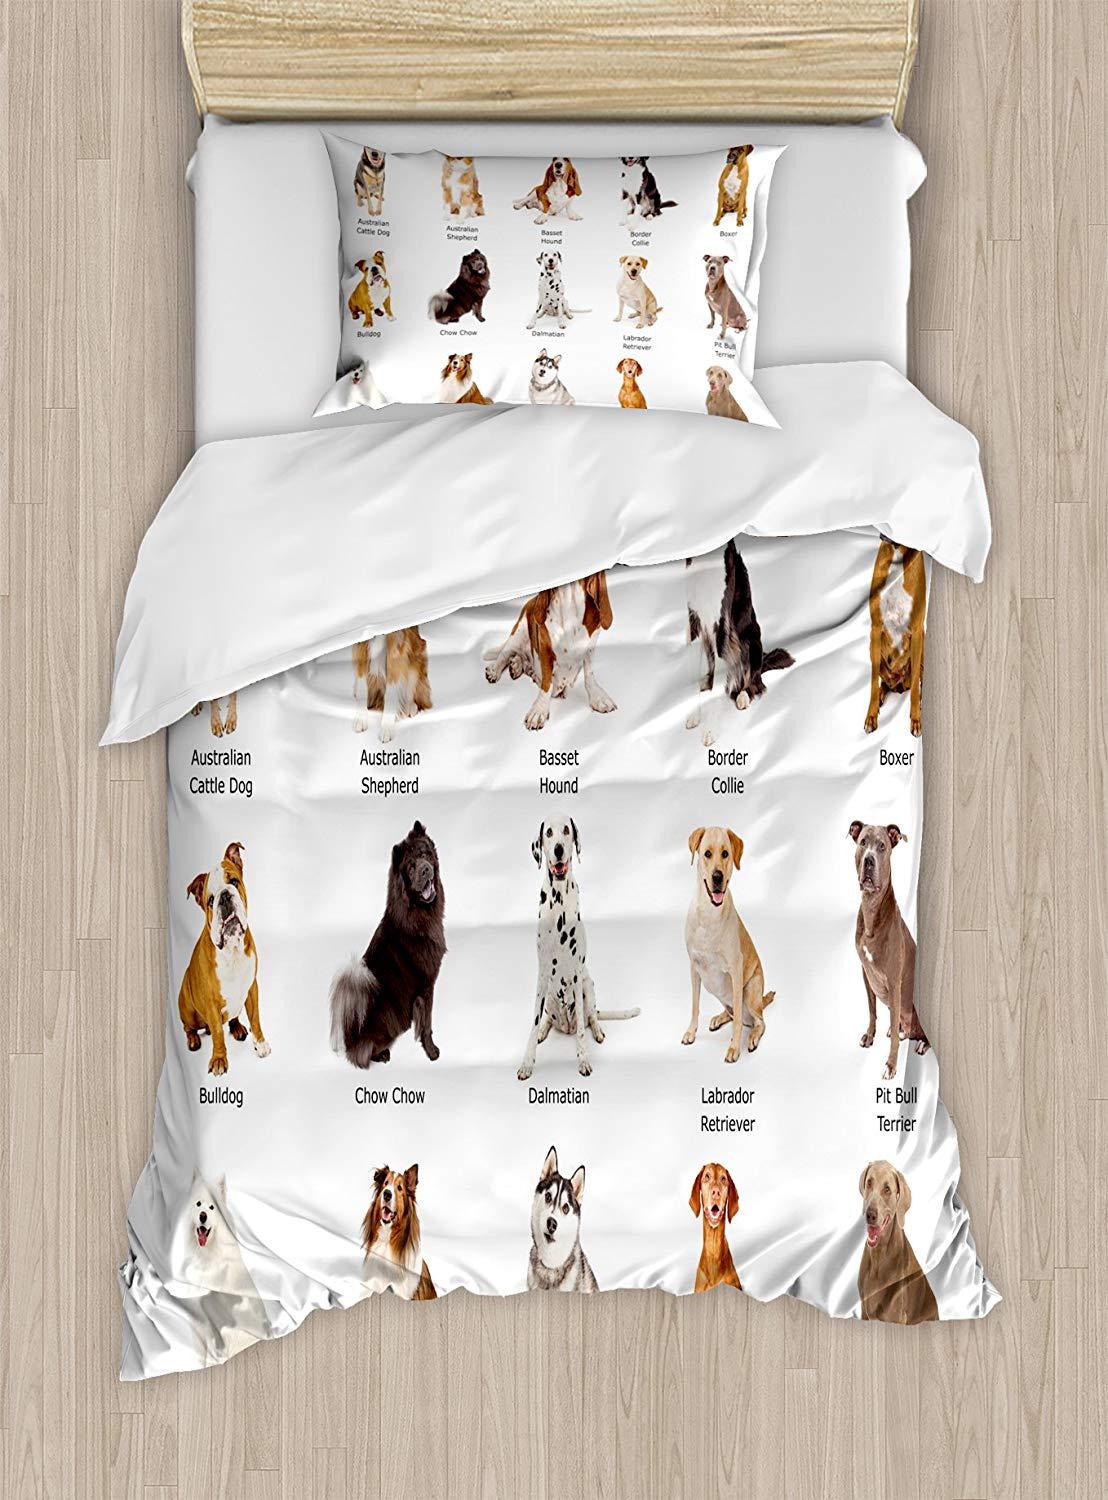 Dog Duvet Cover Set Group Different Puppy Breeds Family Type Species Dalmatian Husky Bulldog Image Print Decorative 2 Piece Bed image